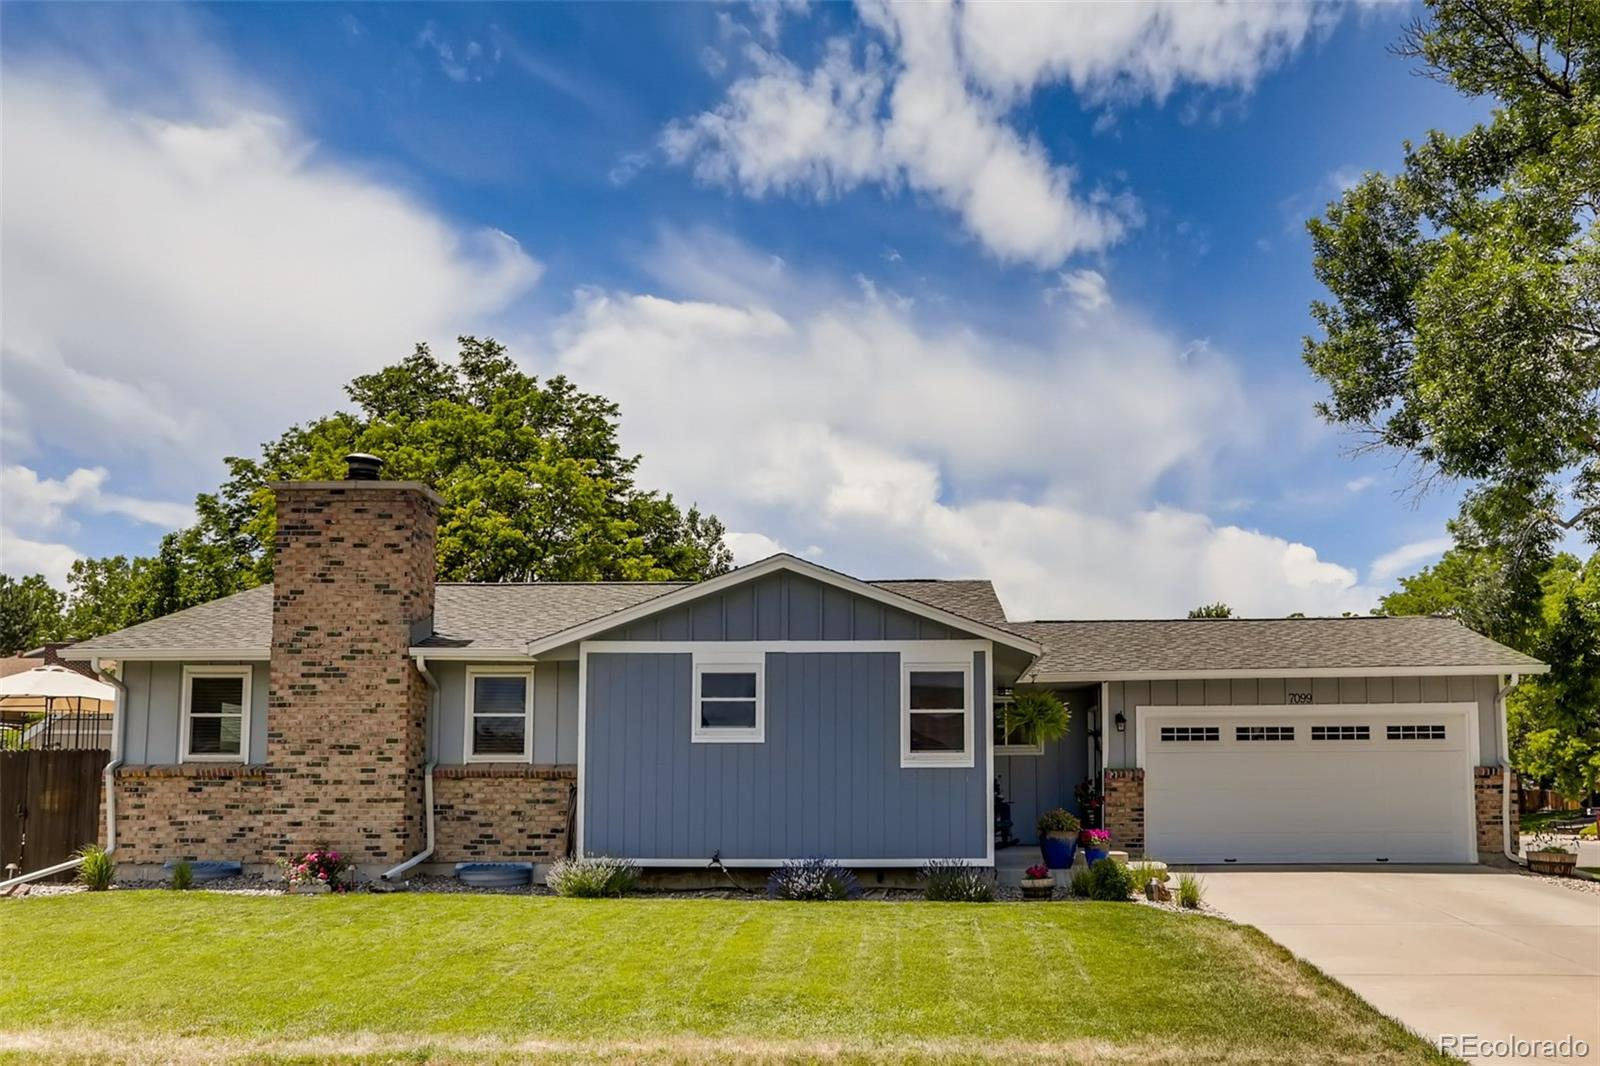 7099 S Allison Way Property Photo - Littleton, CO real estate listing